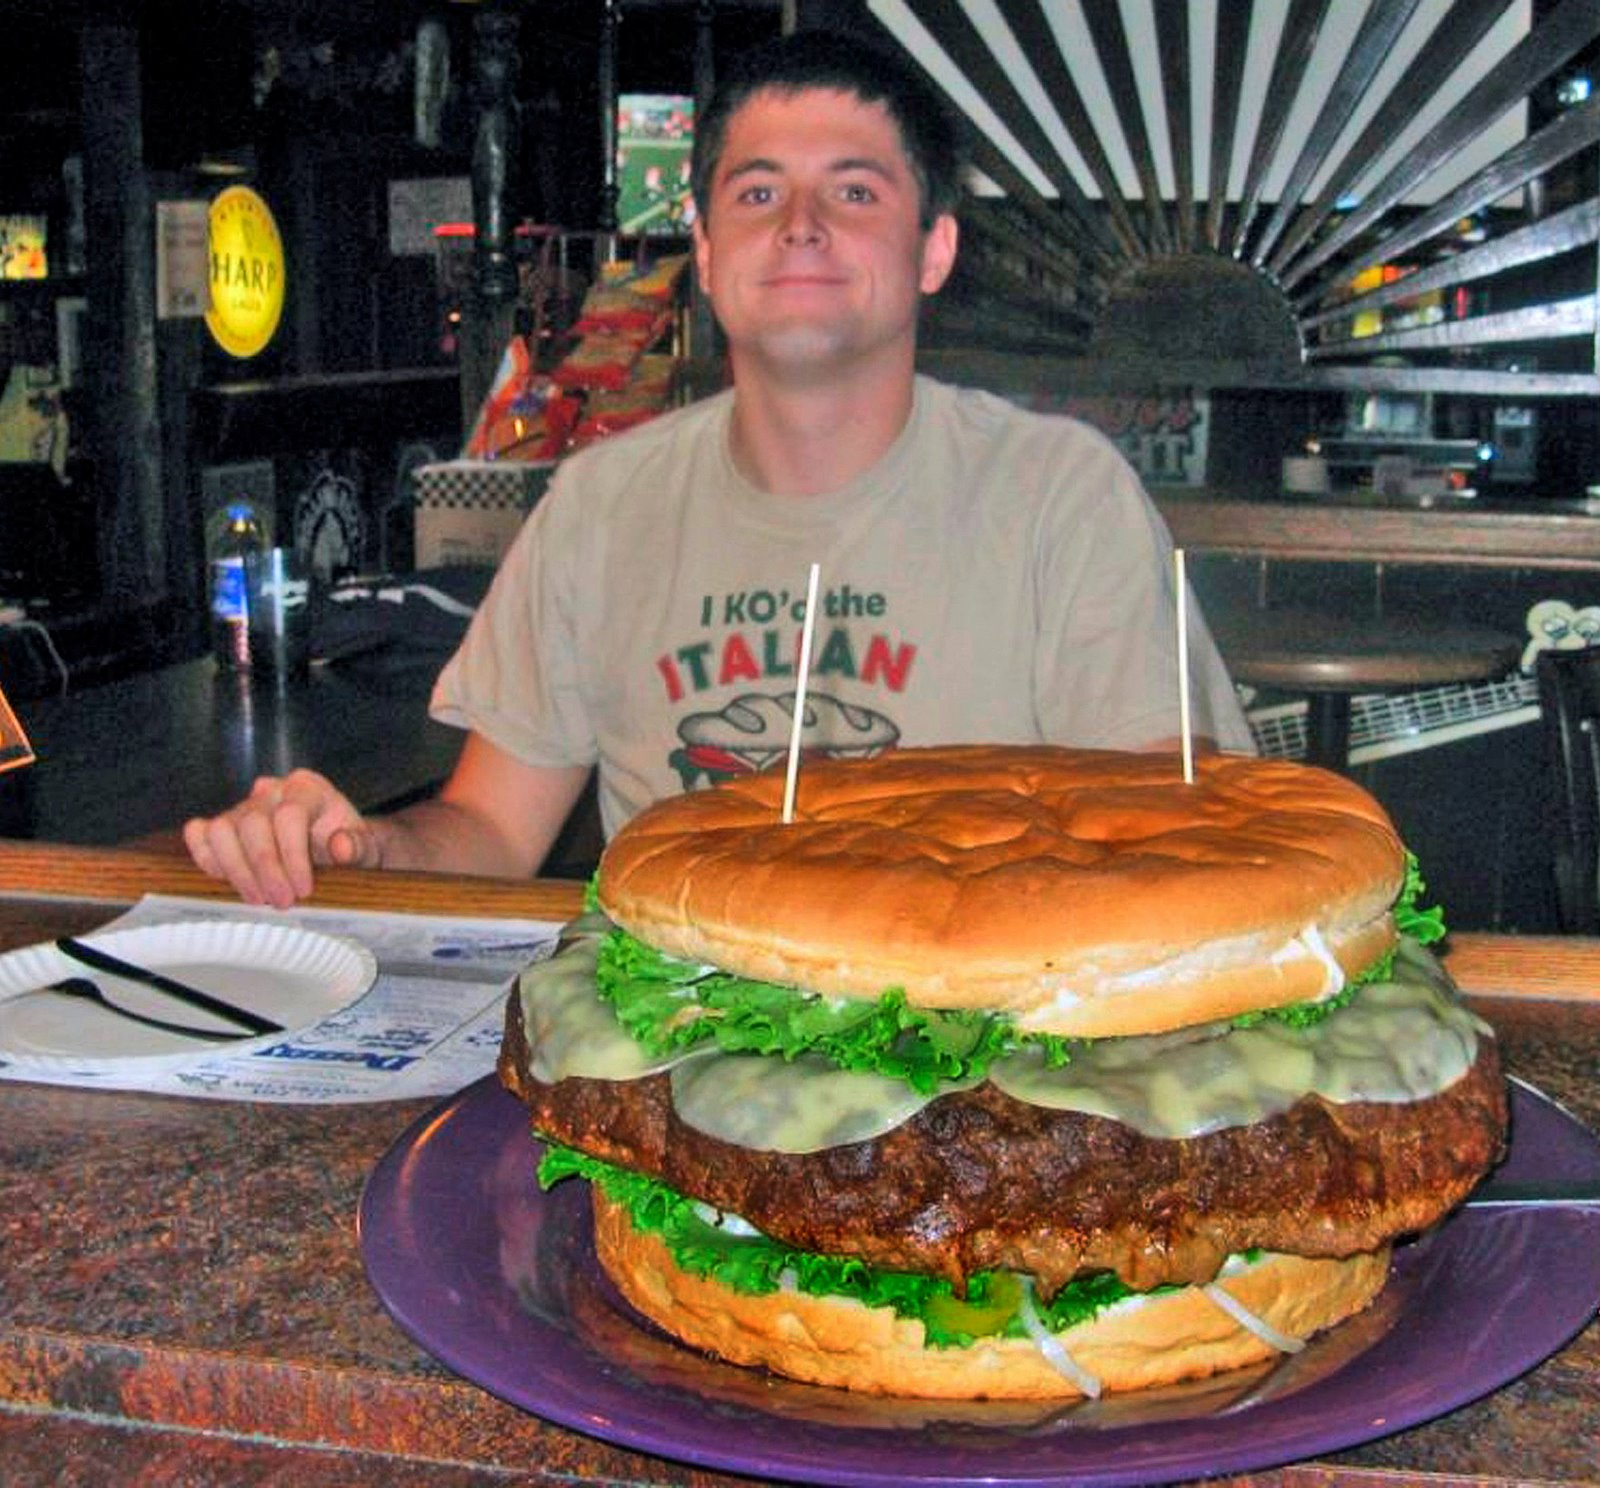 Open Mike: That's a mighty big burger